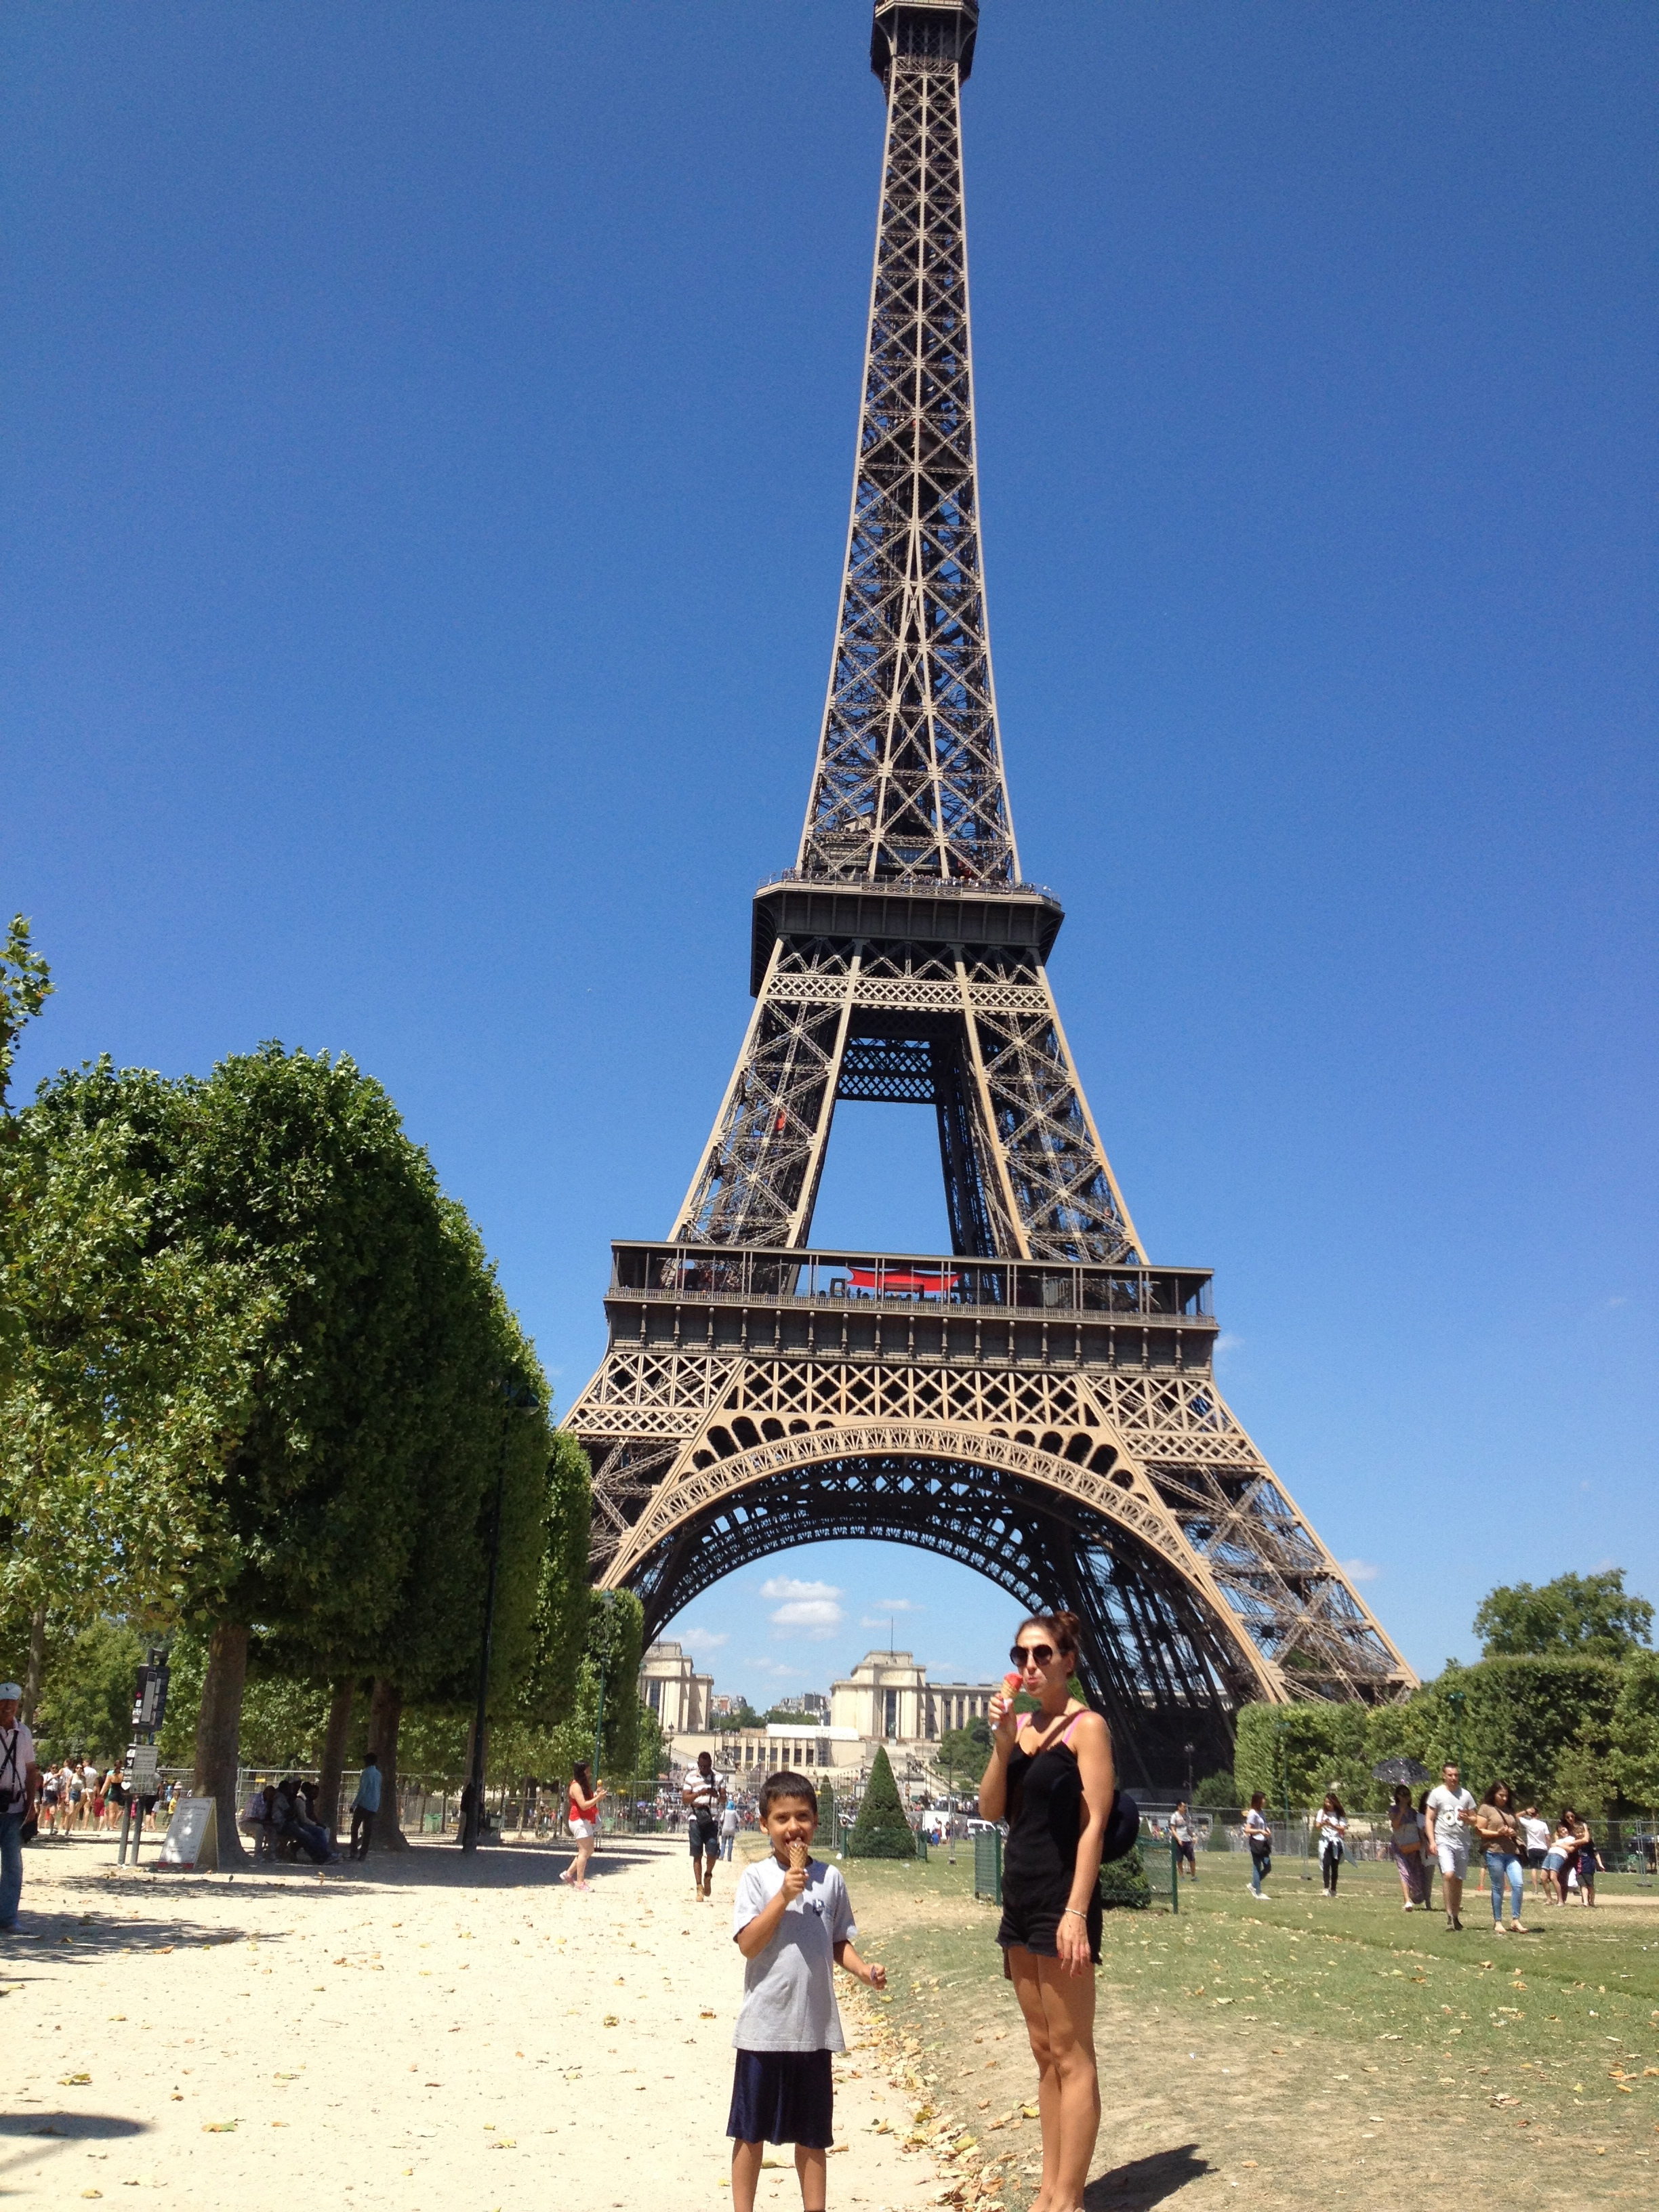 Paris Day by Day: A Day on the Champ-de-Mars